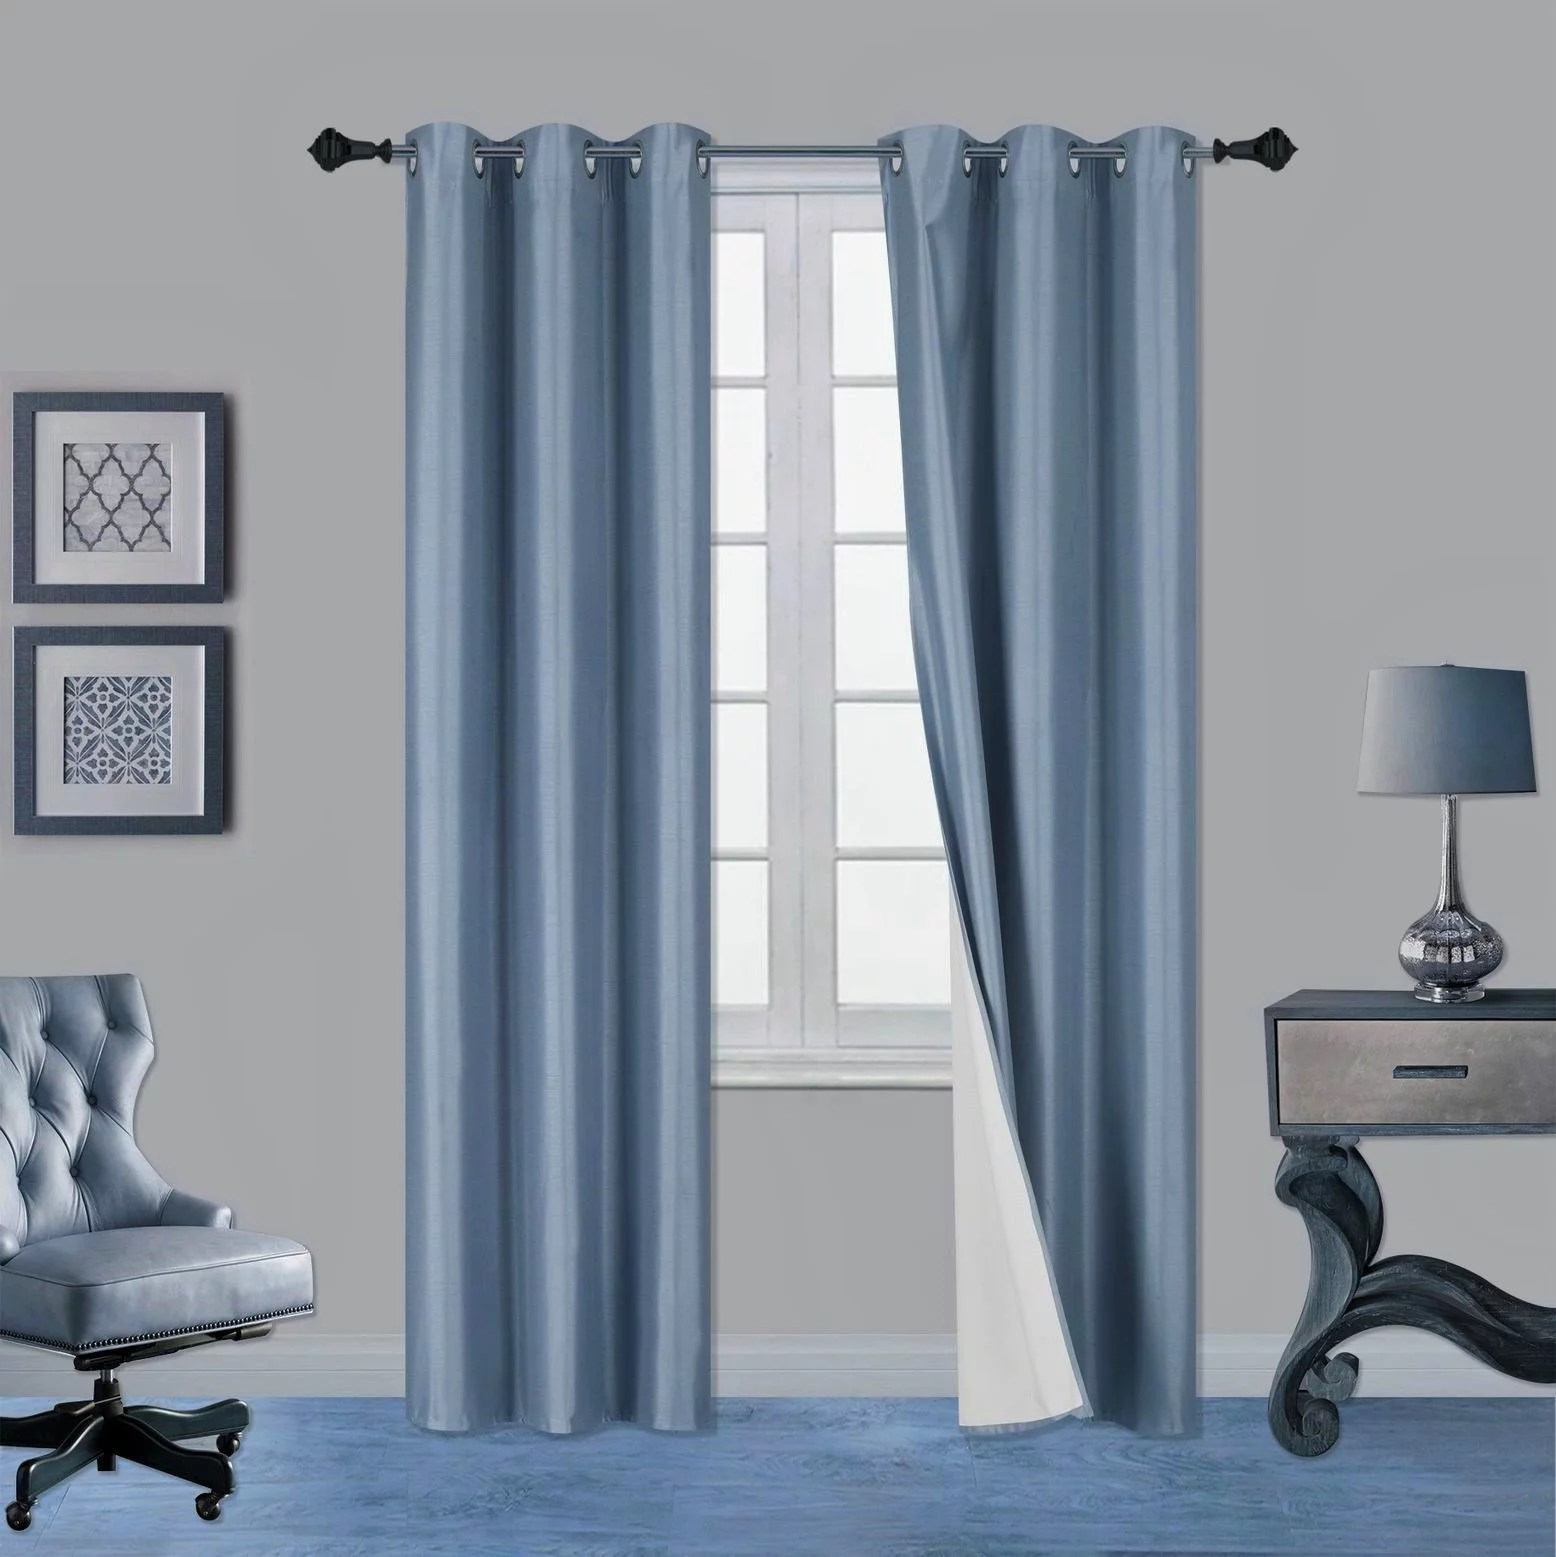 1 pair slate blue noa 84 length insulated lined 100 heavy thick blackout silver grommet window curtain panels drapes not see through energey saving